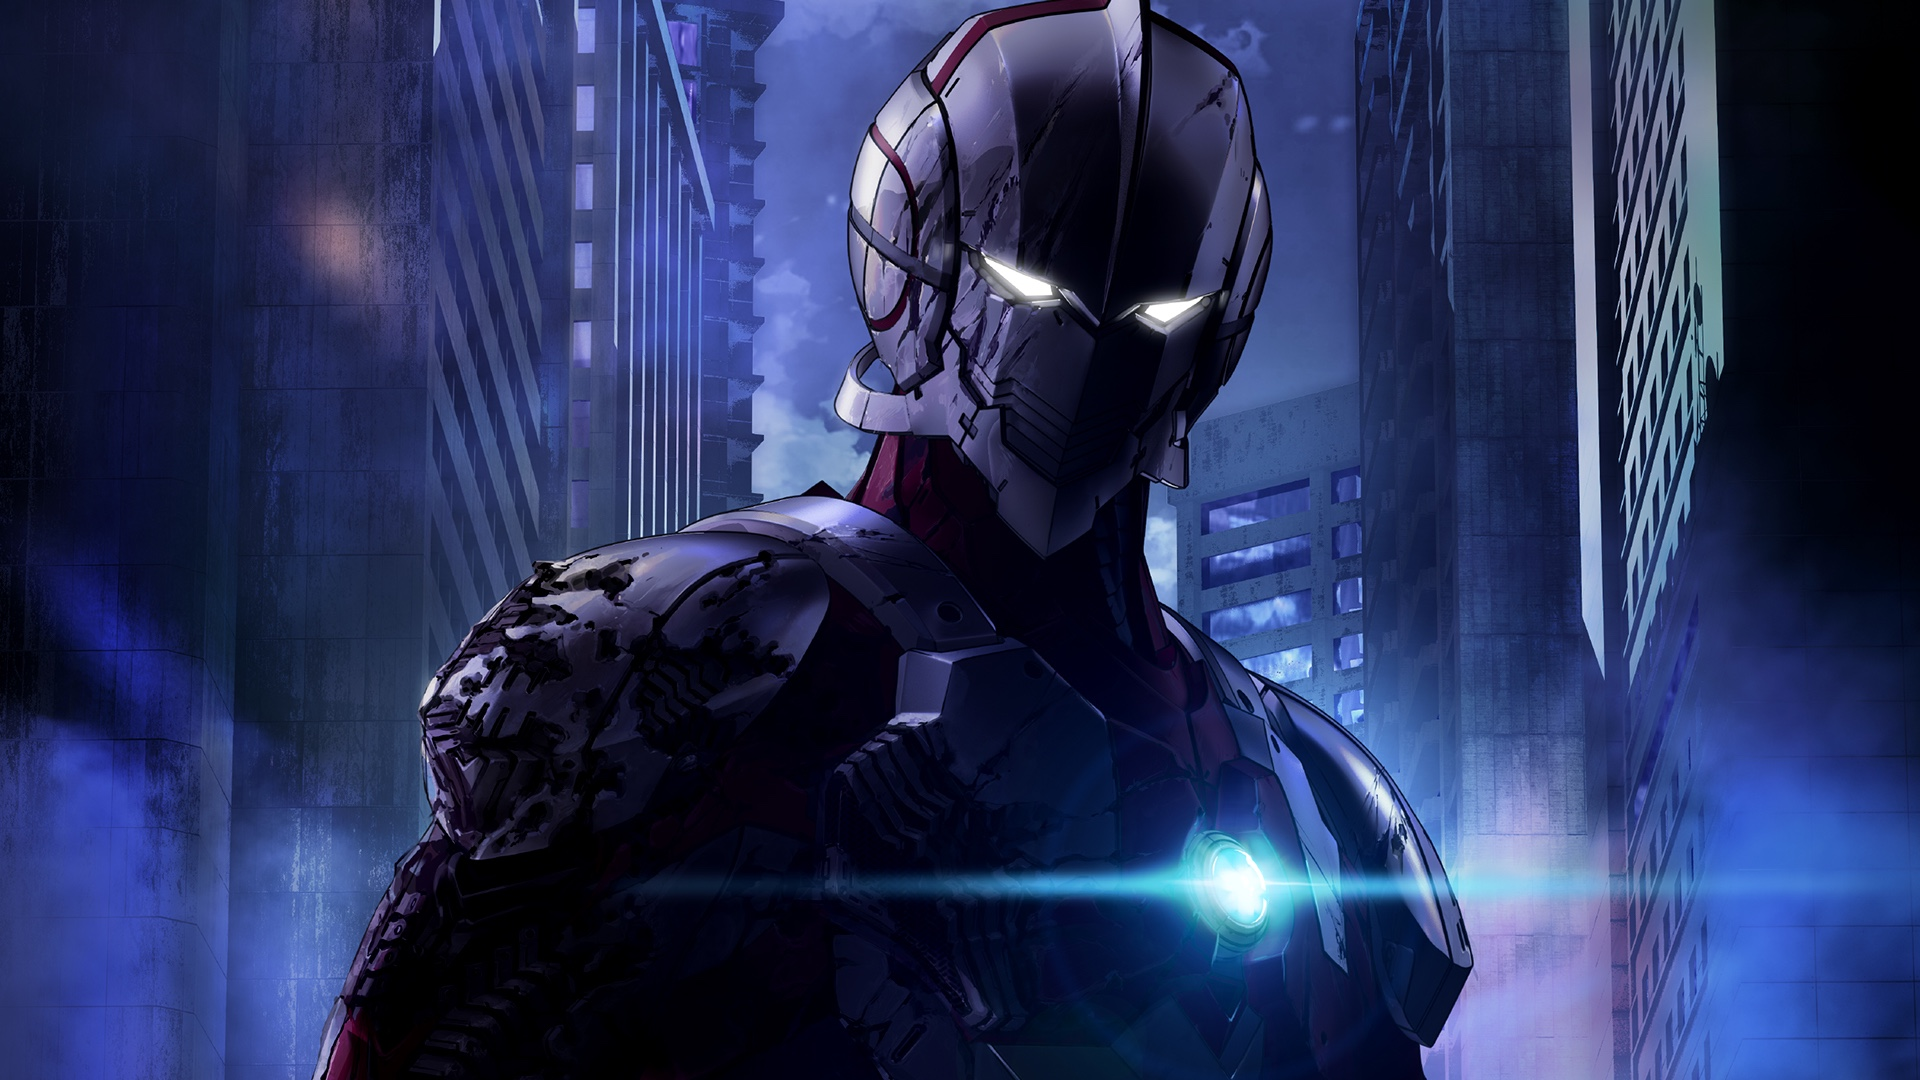 Theres a new ultraman anime series coming to netflix geektyrant